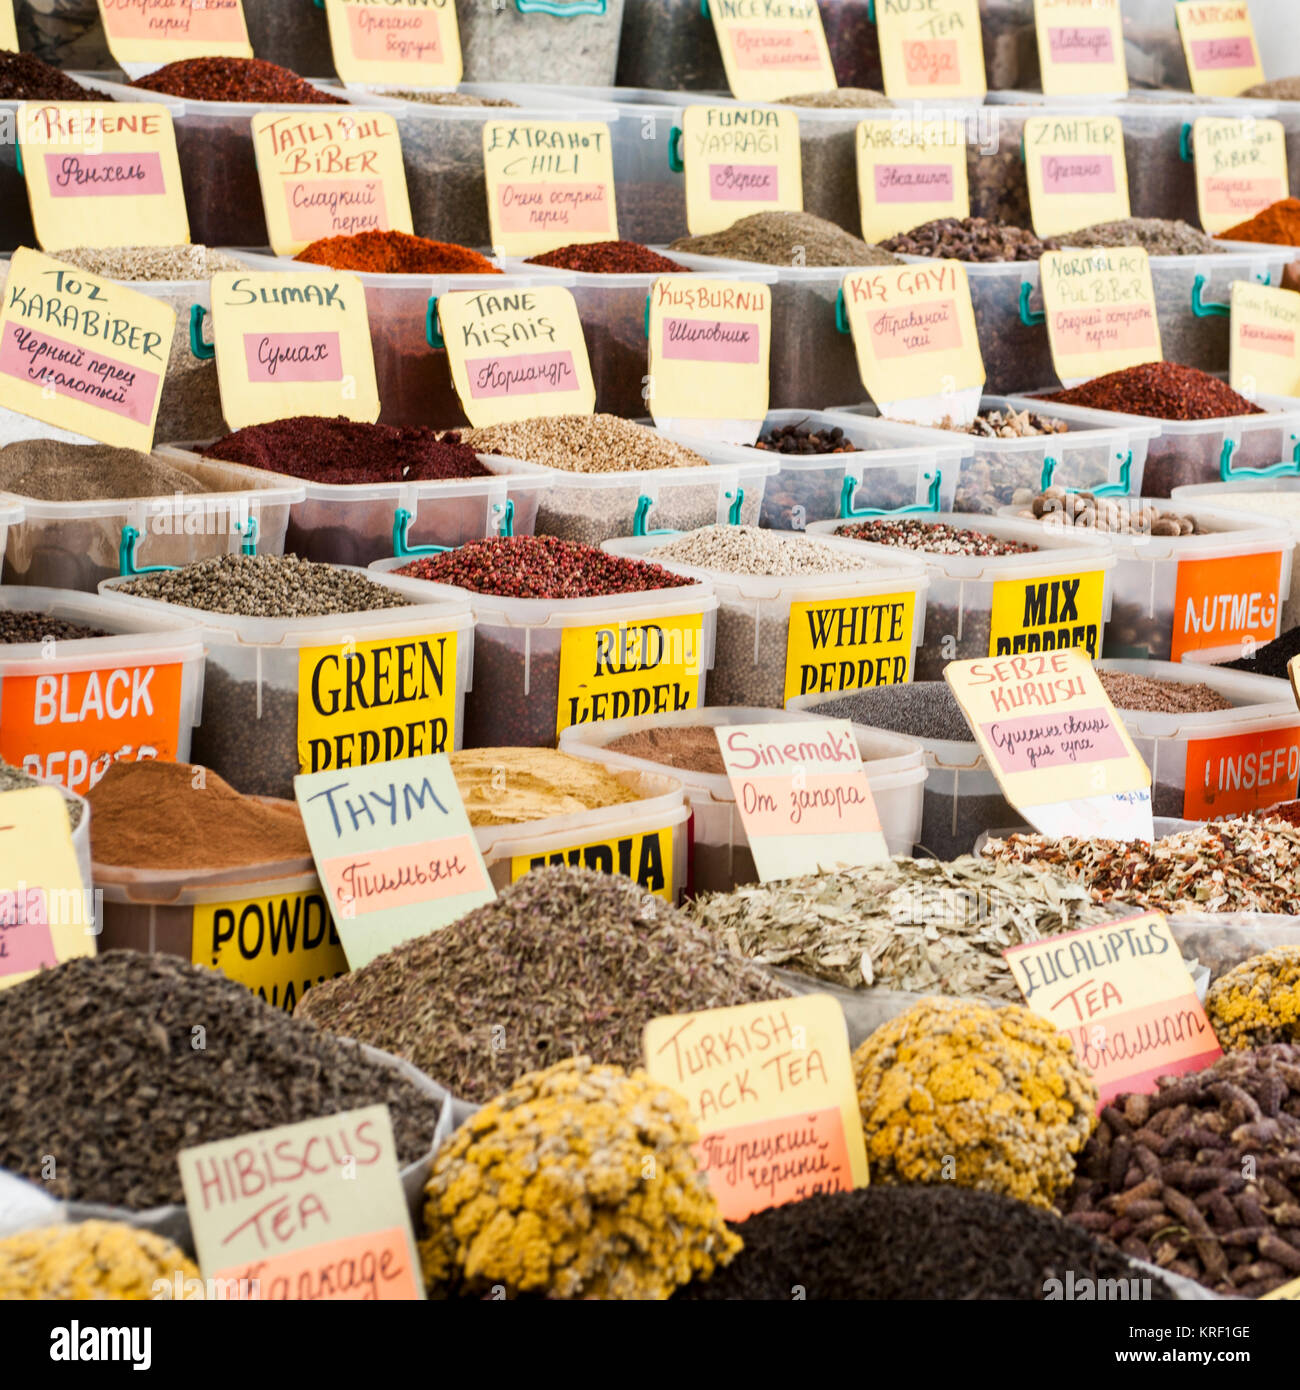 the colors, the aromas and the atmosphere of the Turgutris market in Turkey Stock Photo